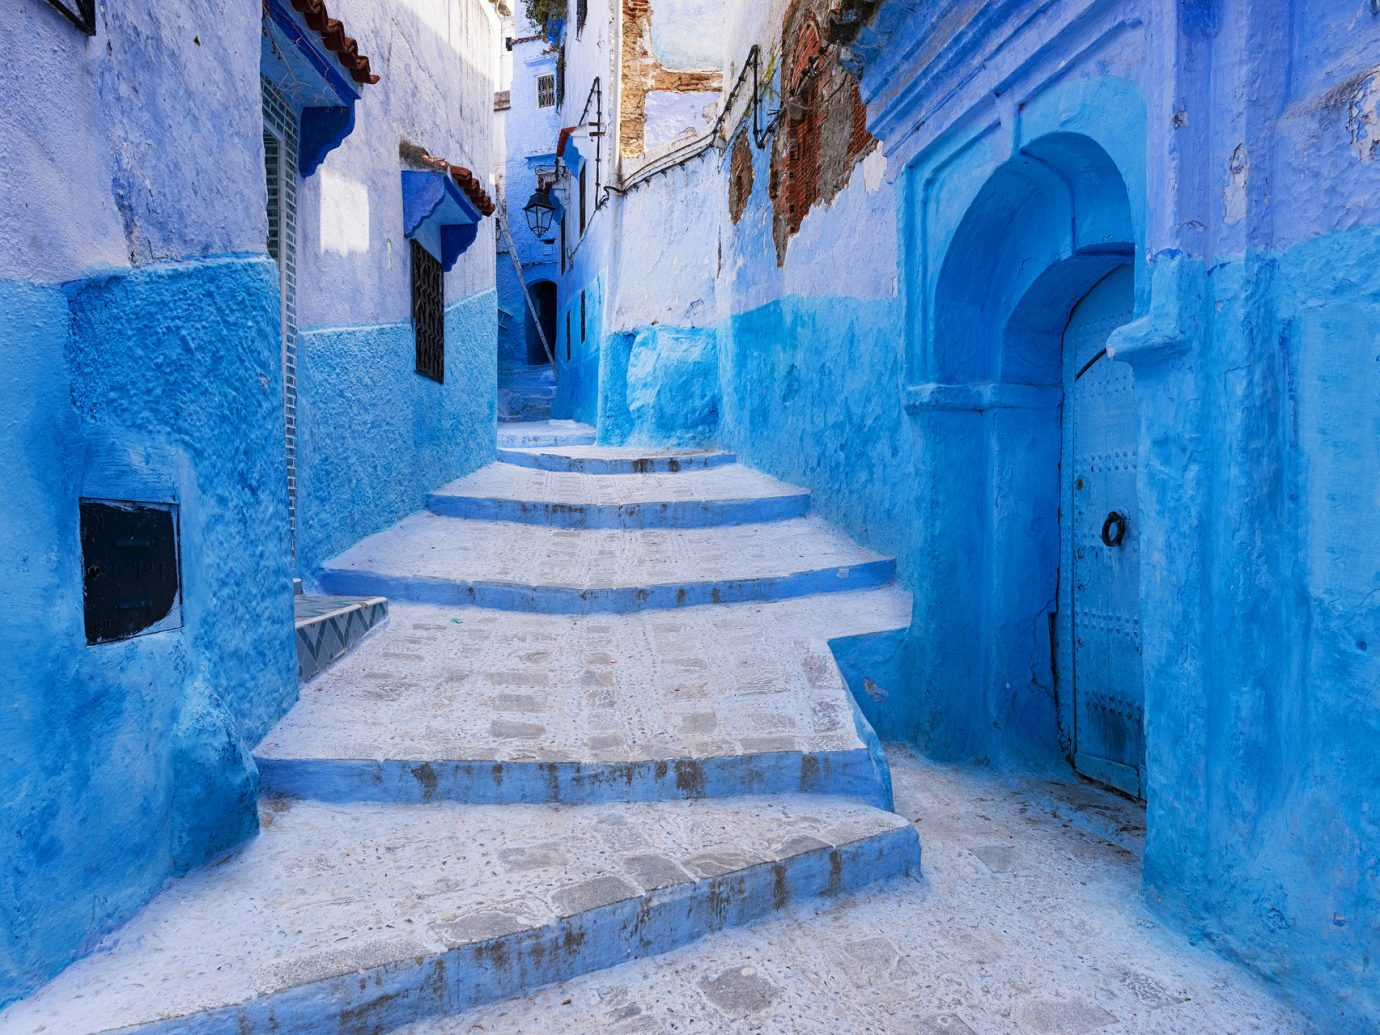 Arts + Culture Marrakech Morocco Style + Design Trip Ideas building color blue Winter wall urban area freezing season snow ice concrete cement dirty